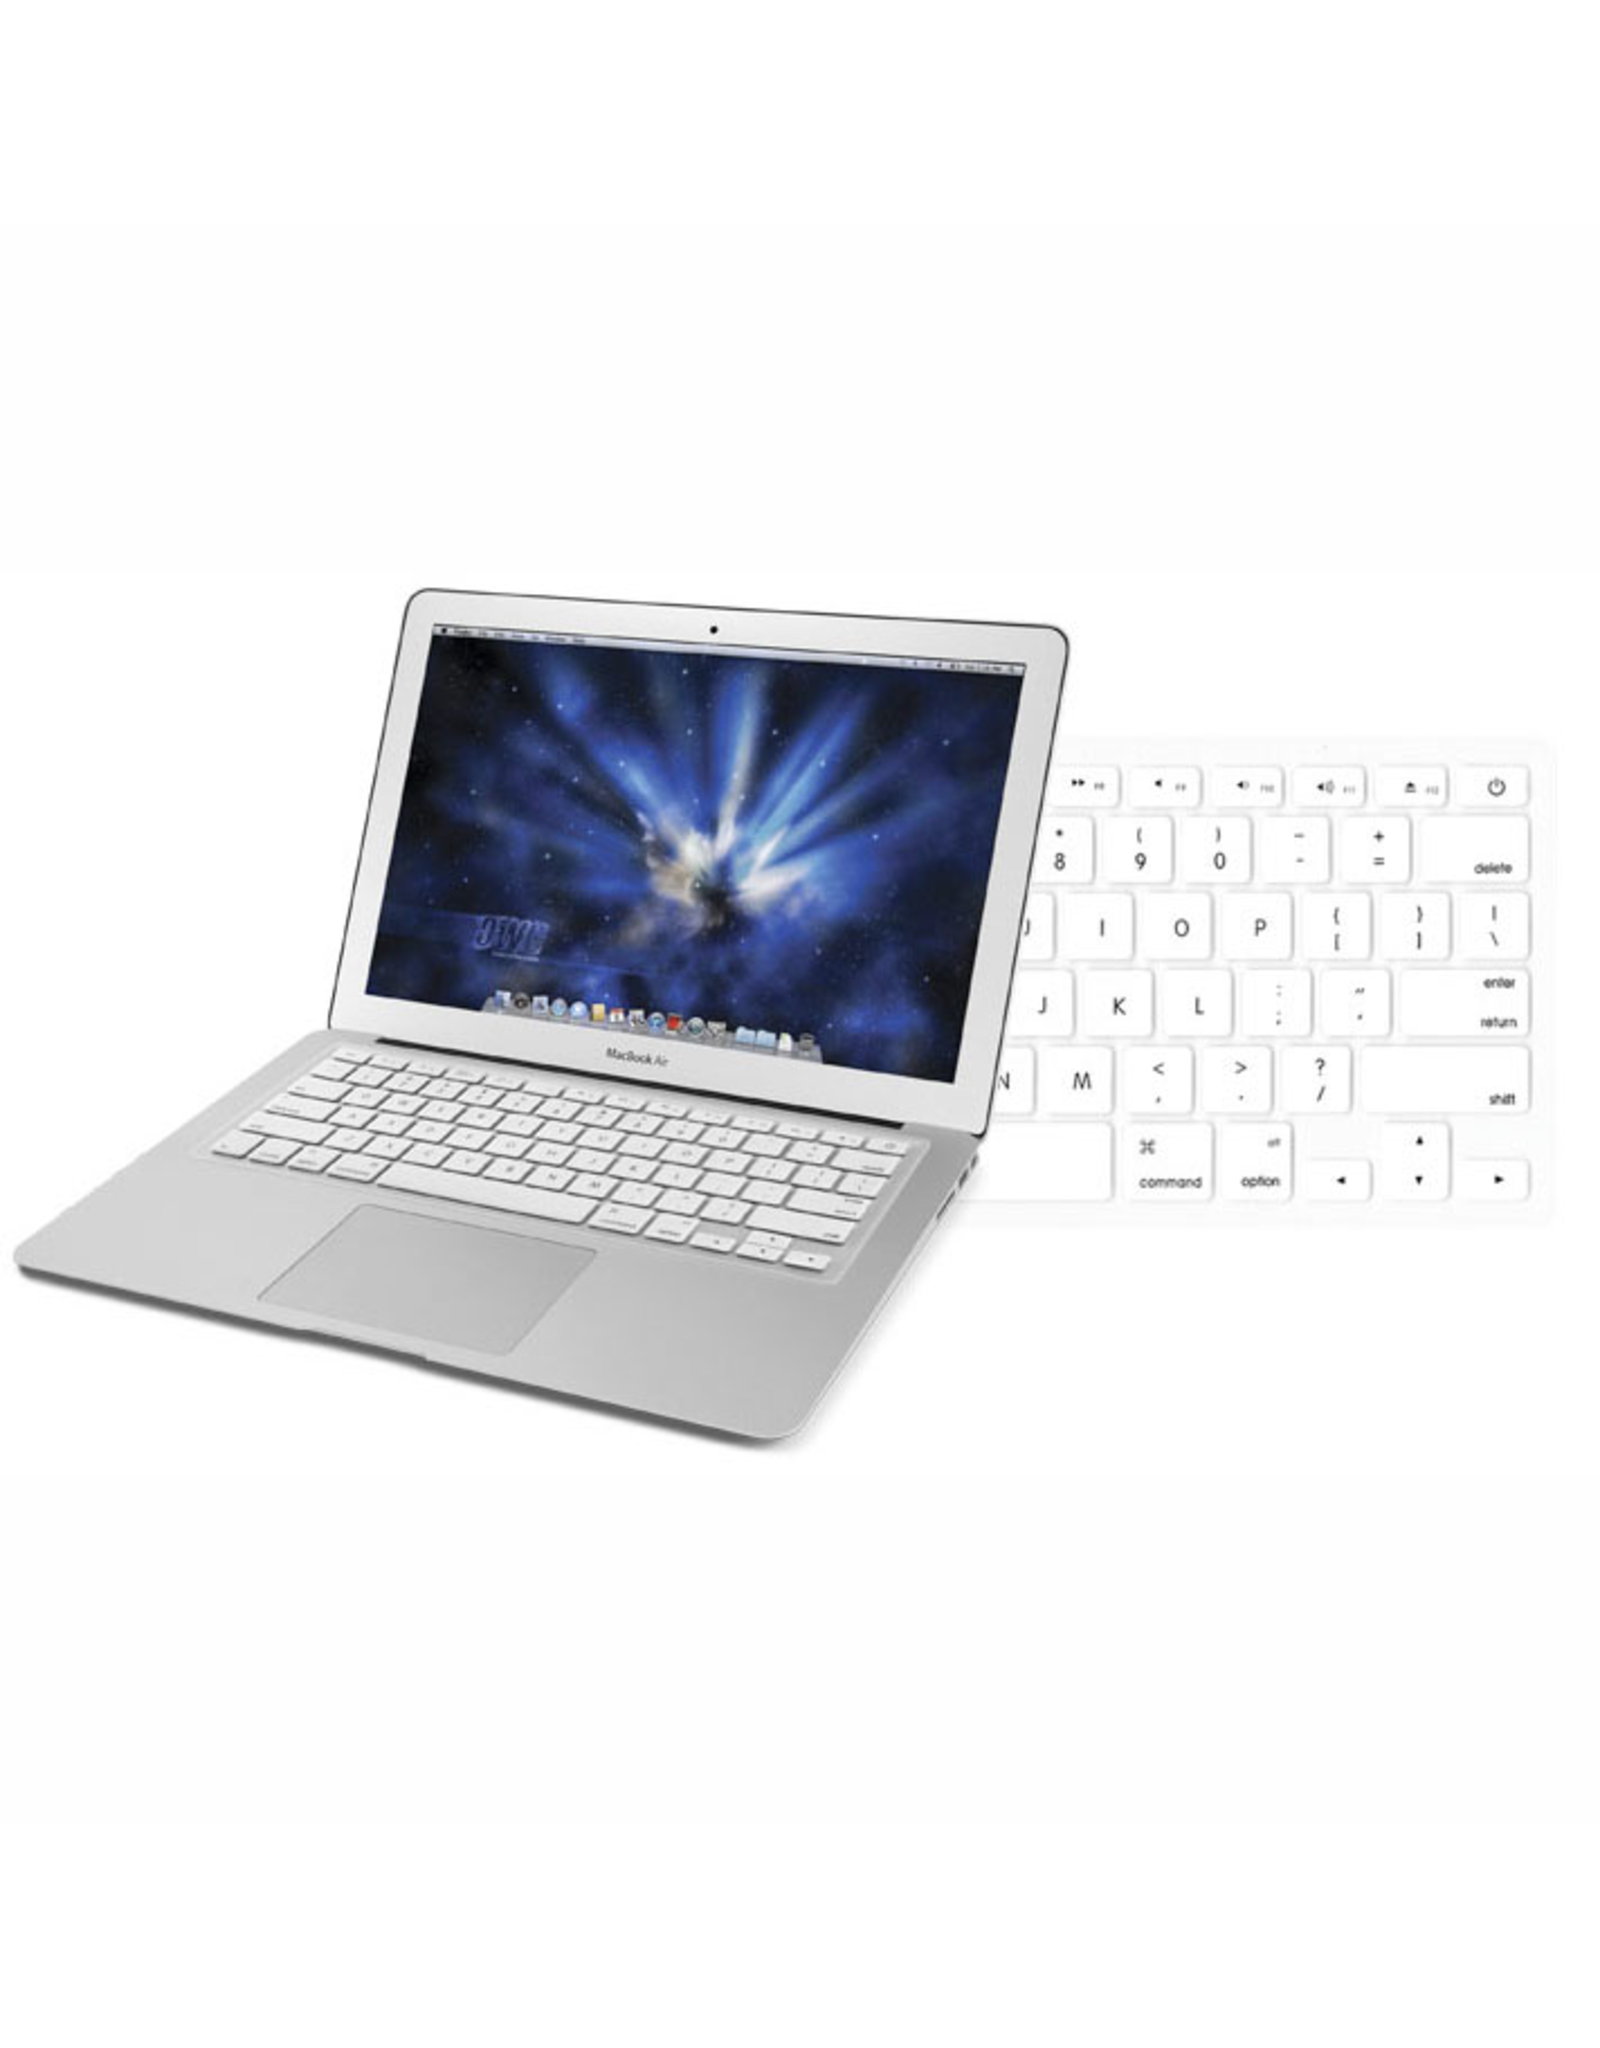 """Newertech NewerTech NuGuard Keyboard Cover Silicone Skin for 2010/11 MacBook Air 13"""" - White"""